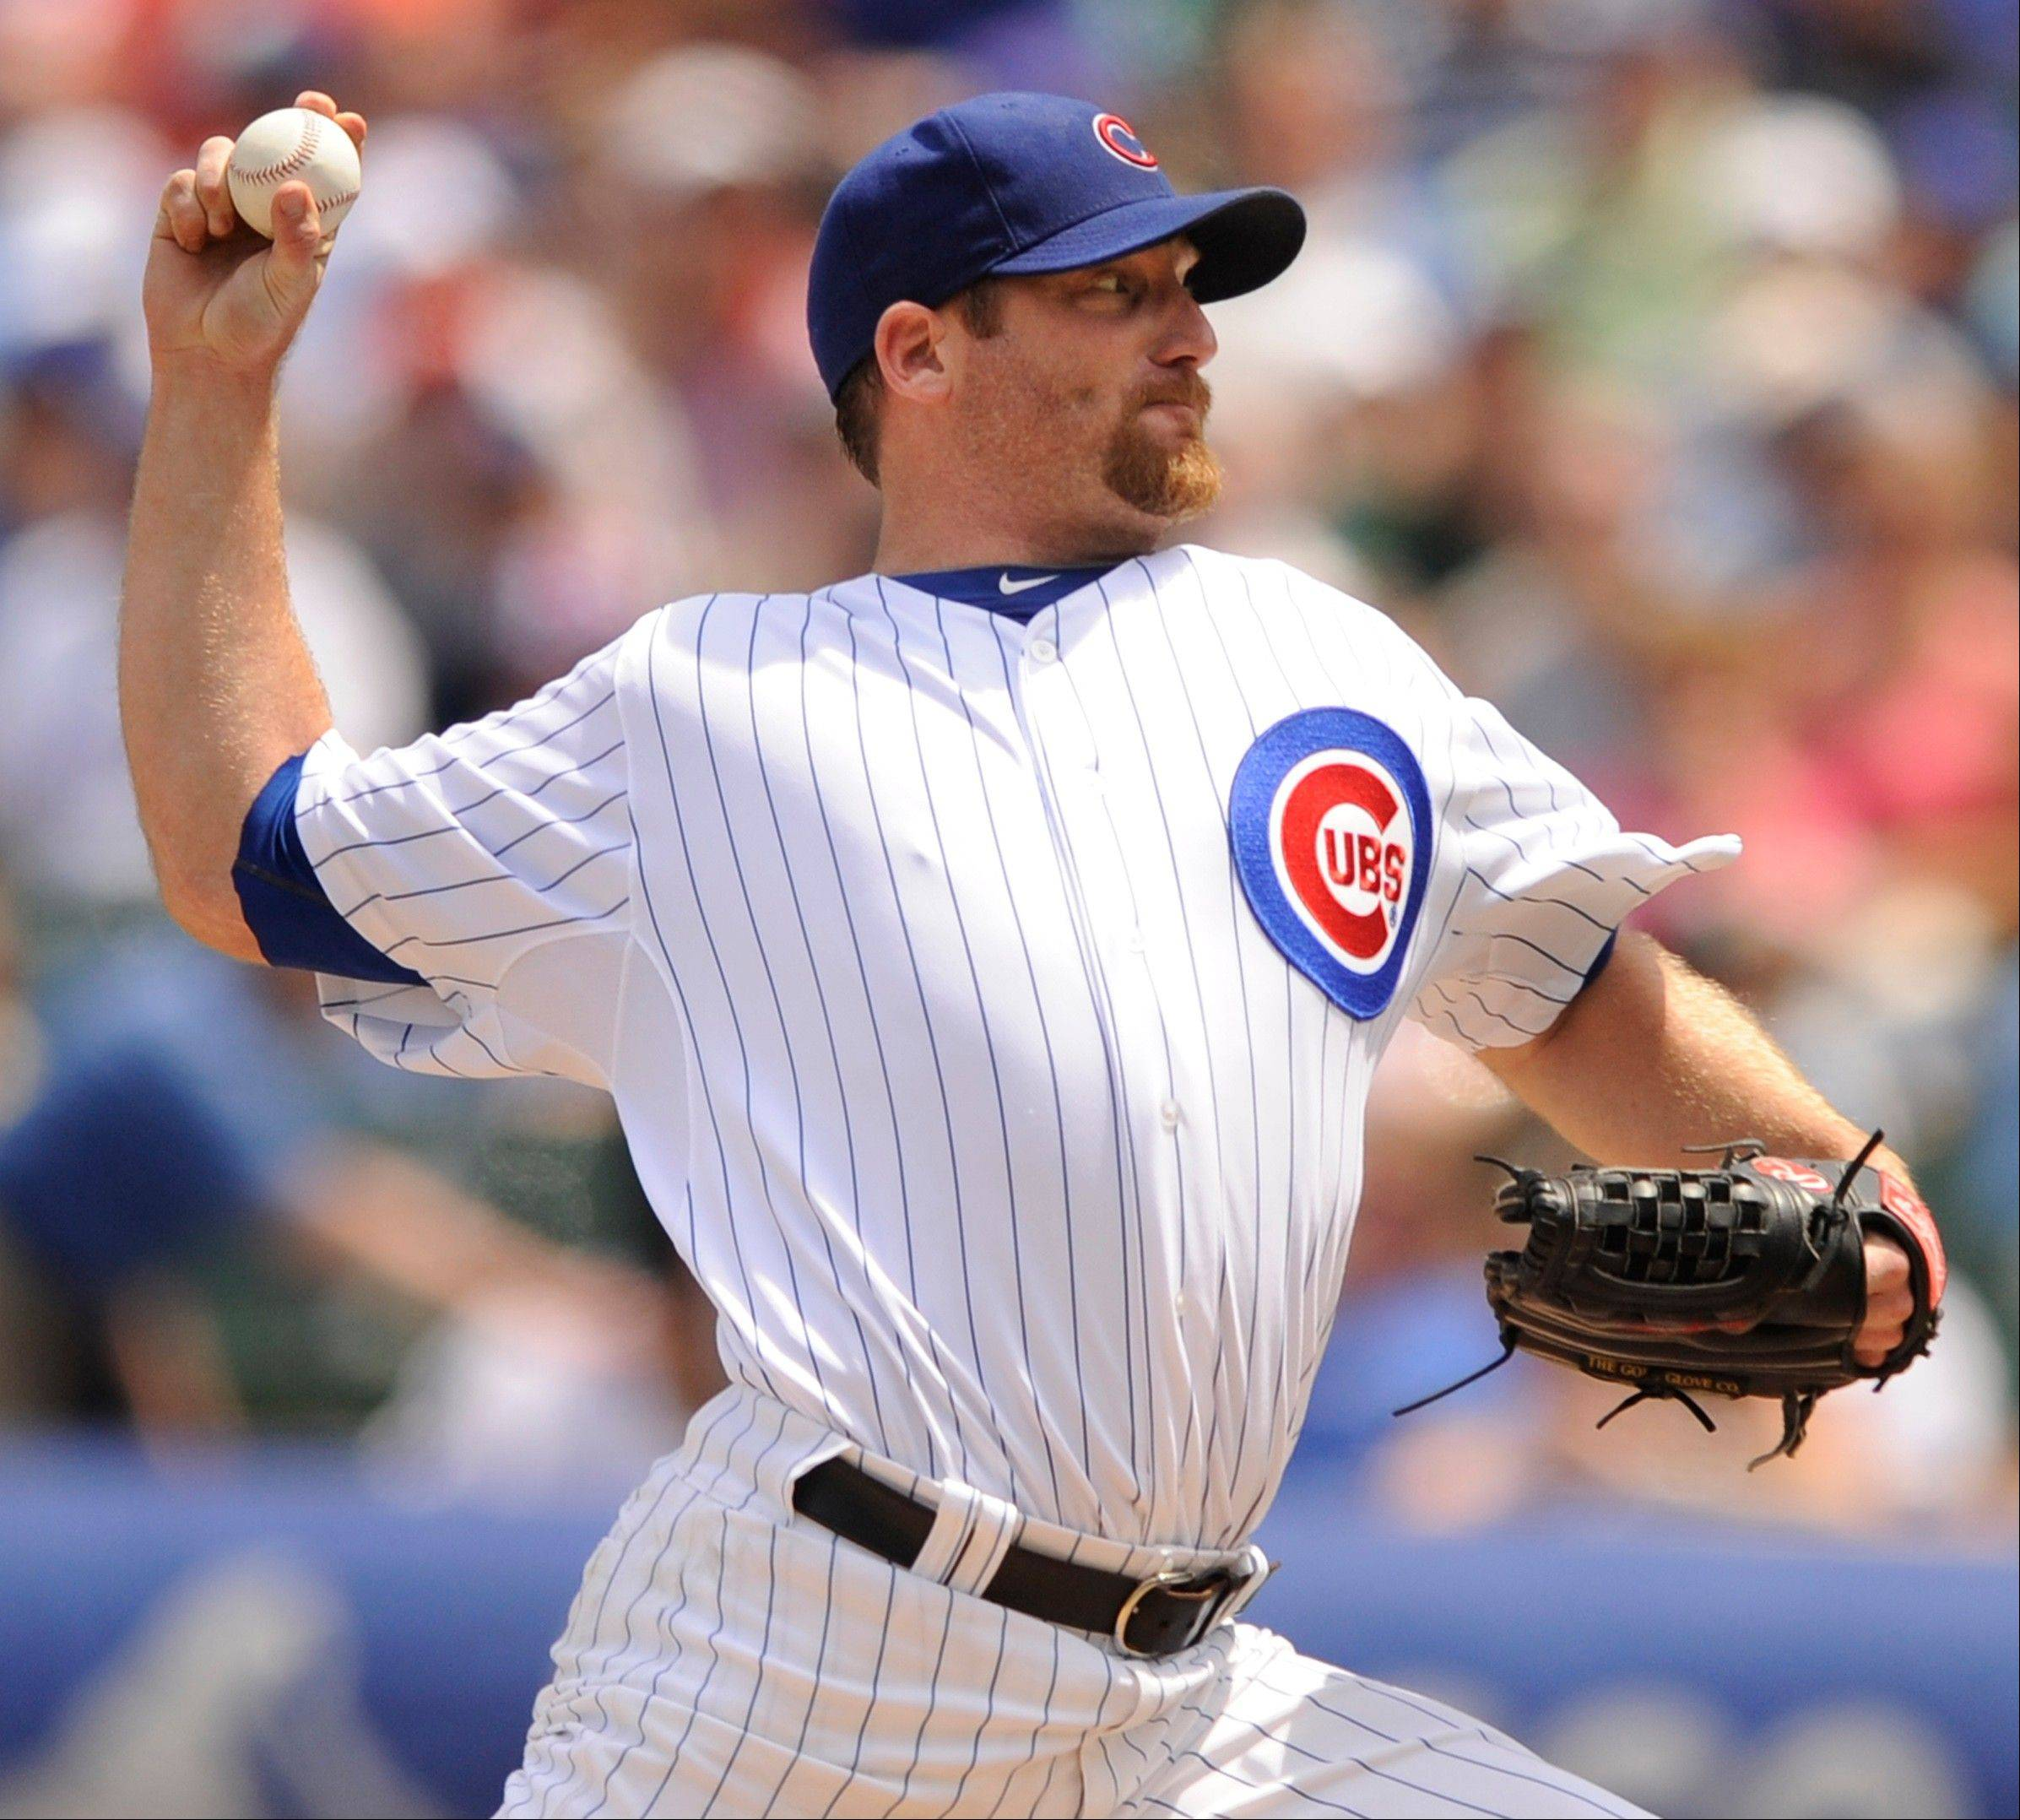 Ryan Dempster happily delivered 8 innings of scoreless, 4-hit ball on Friday against the Florida Marlins.